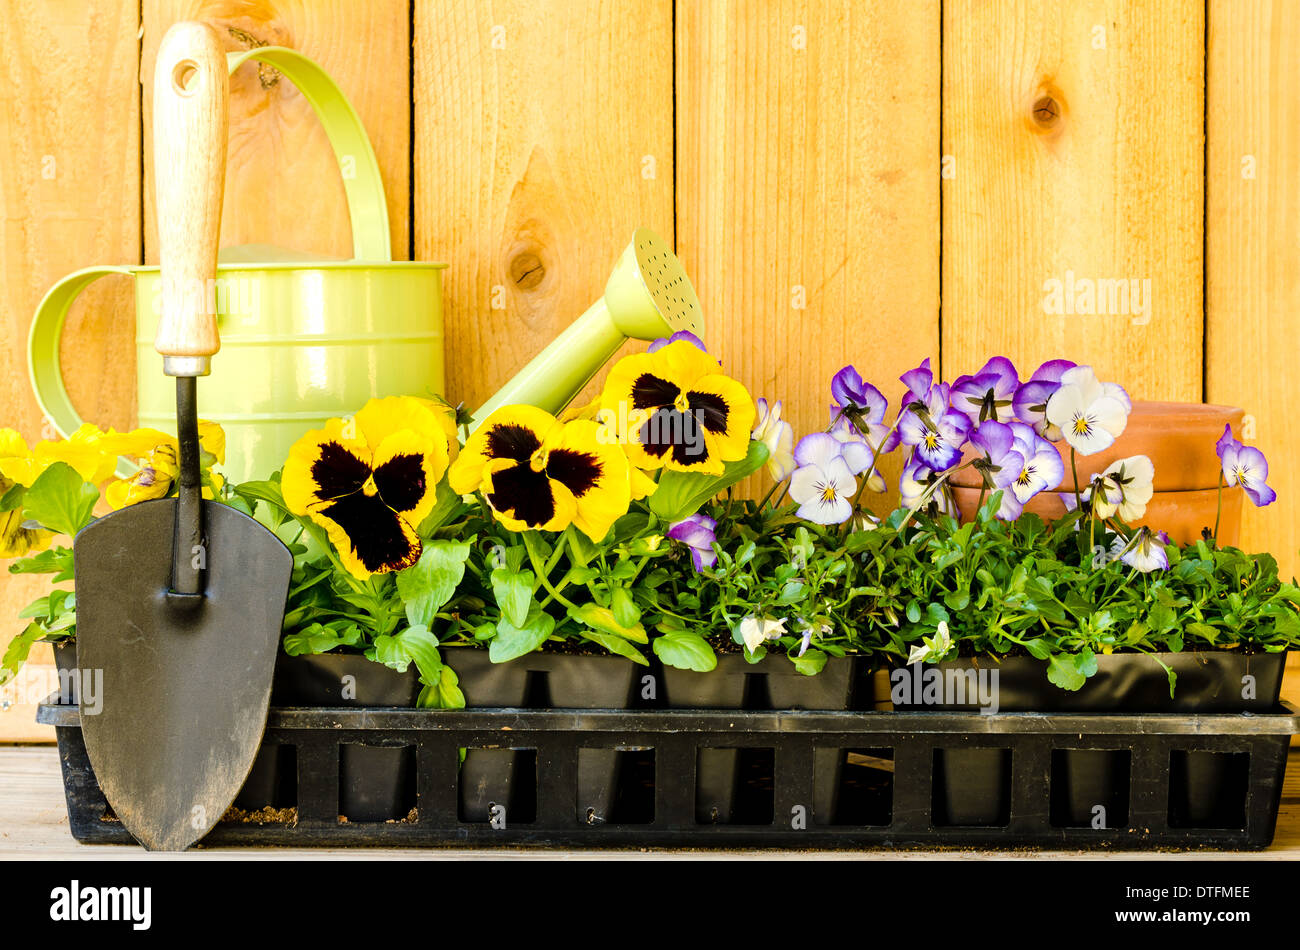 Garden planting with pansies, violas, watering can, trowel, and pots on wood background. - Stock Image